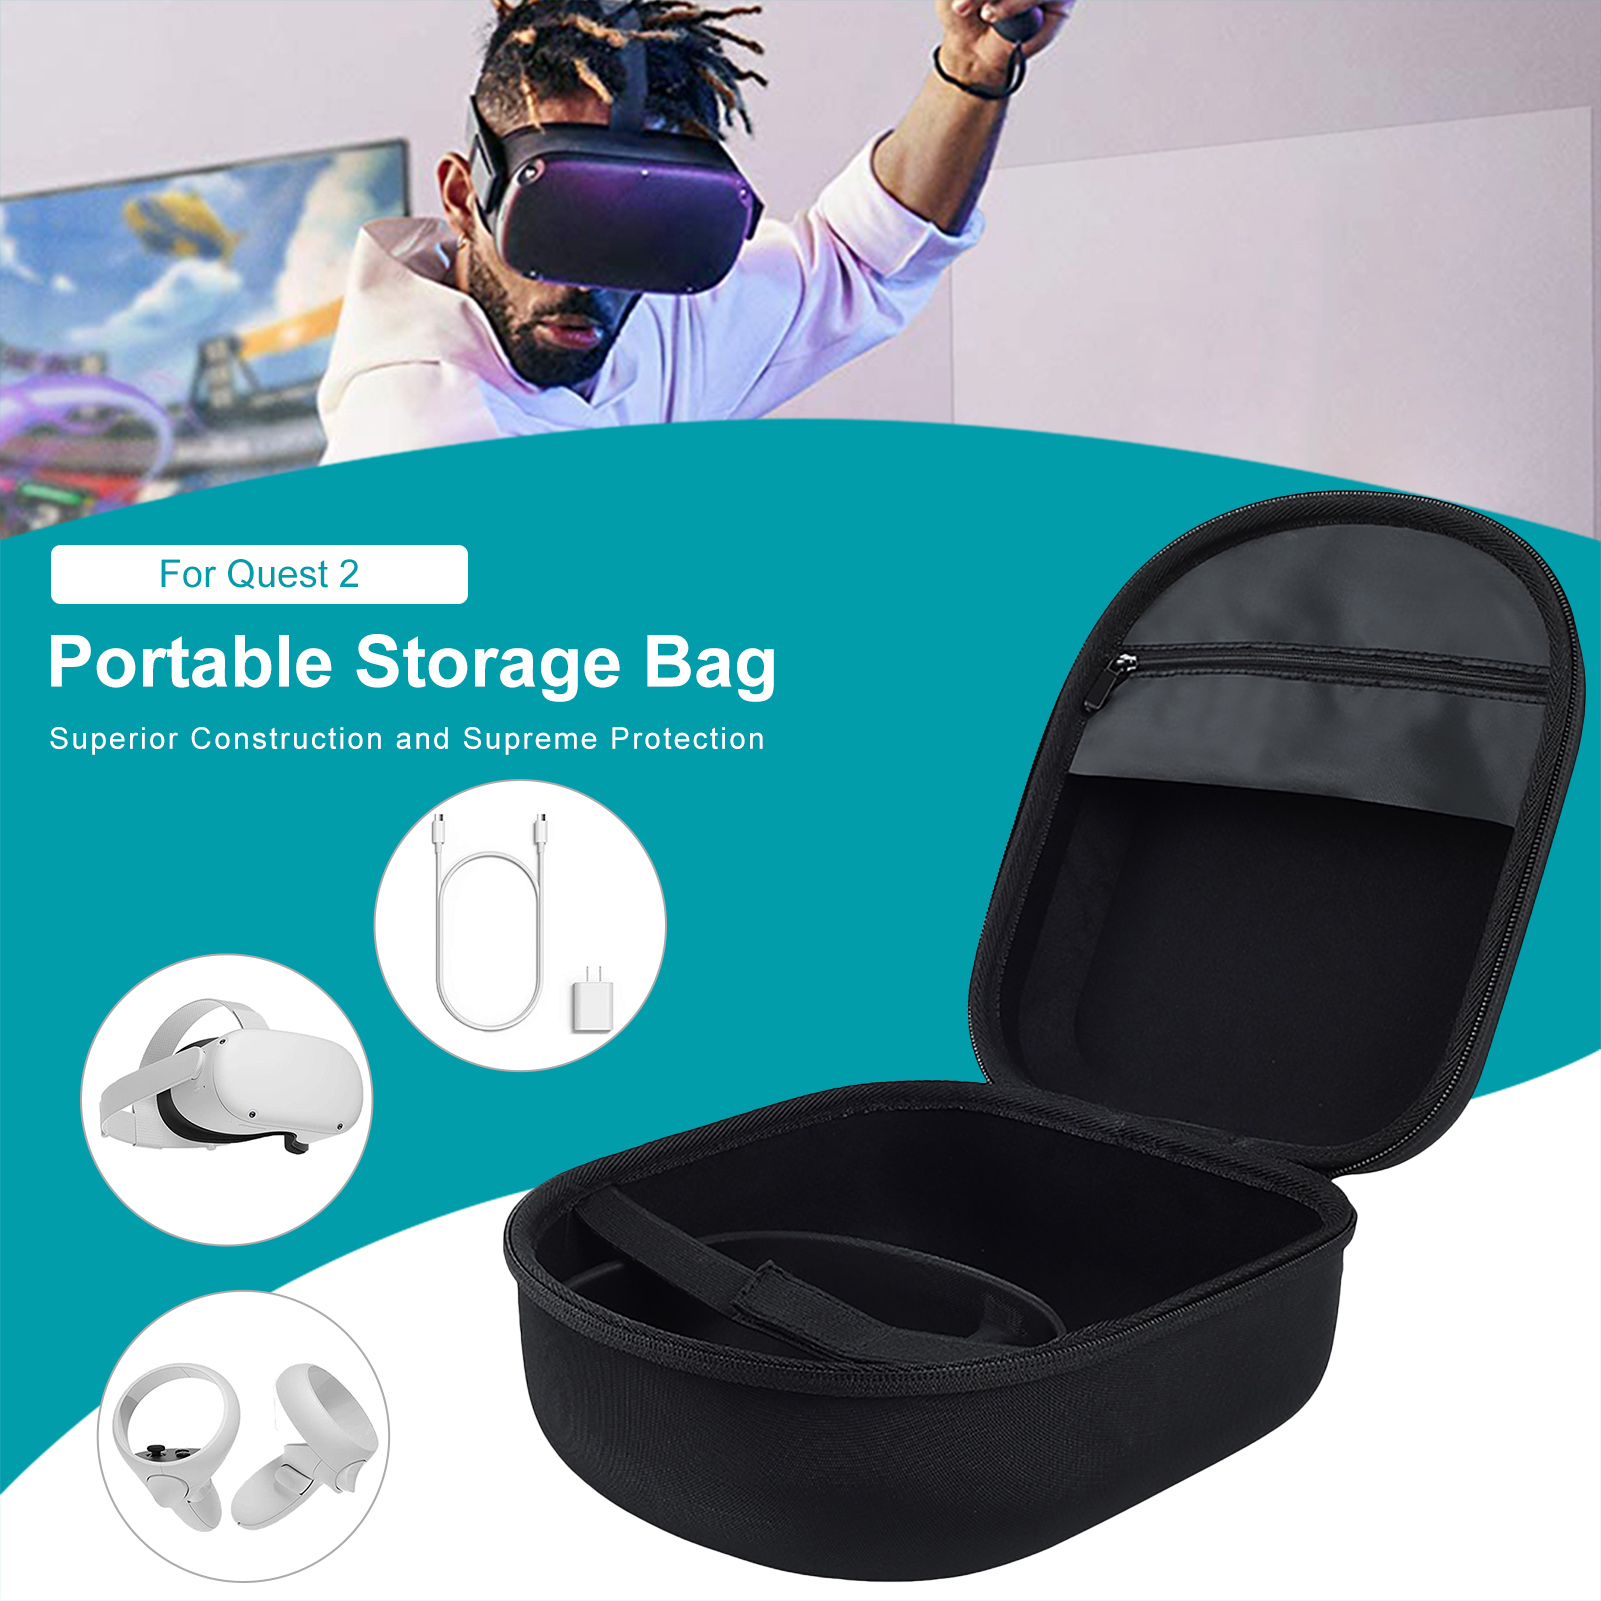 VR Headset Storage Box Hard Carrying Case For Oculus Quest 2 All in one VR Strap Controller VR Accessories|3D Glasses/ Virtual Reality Glasses| - AliExpress